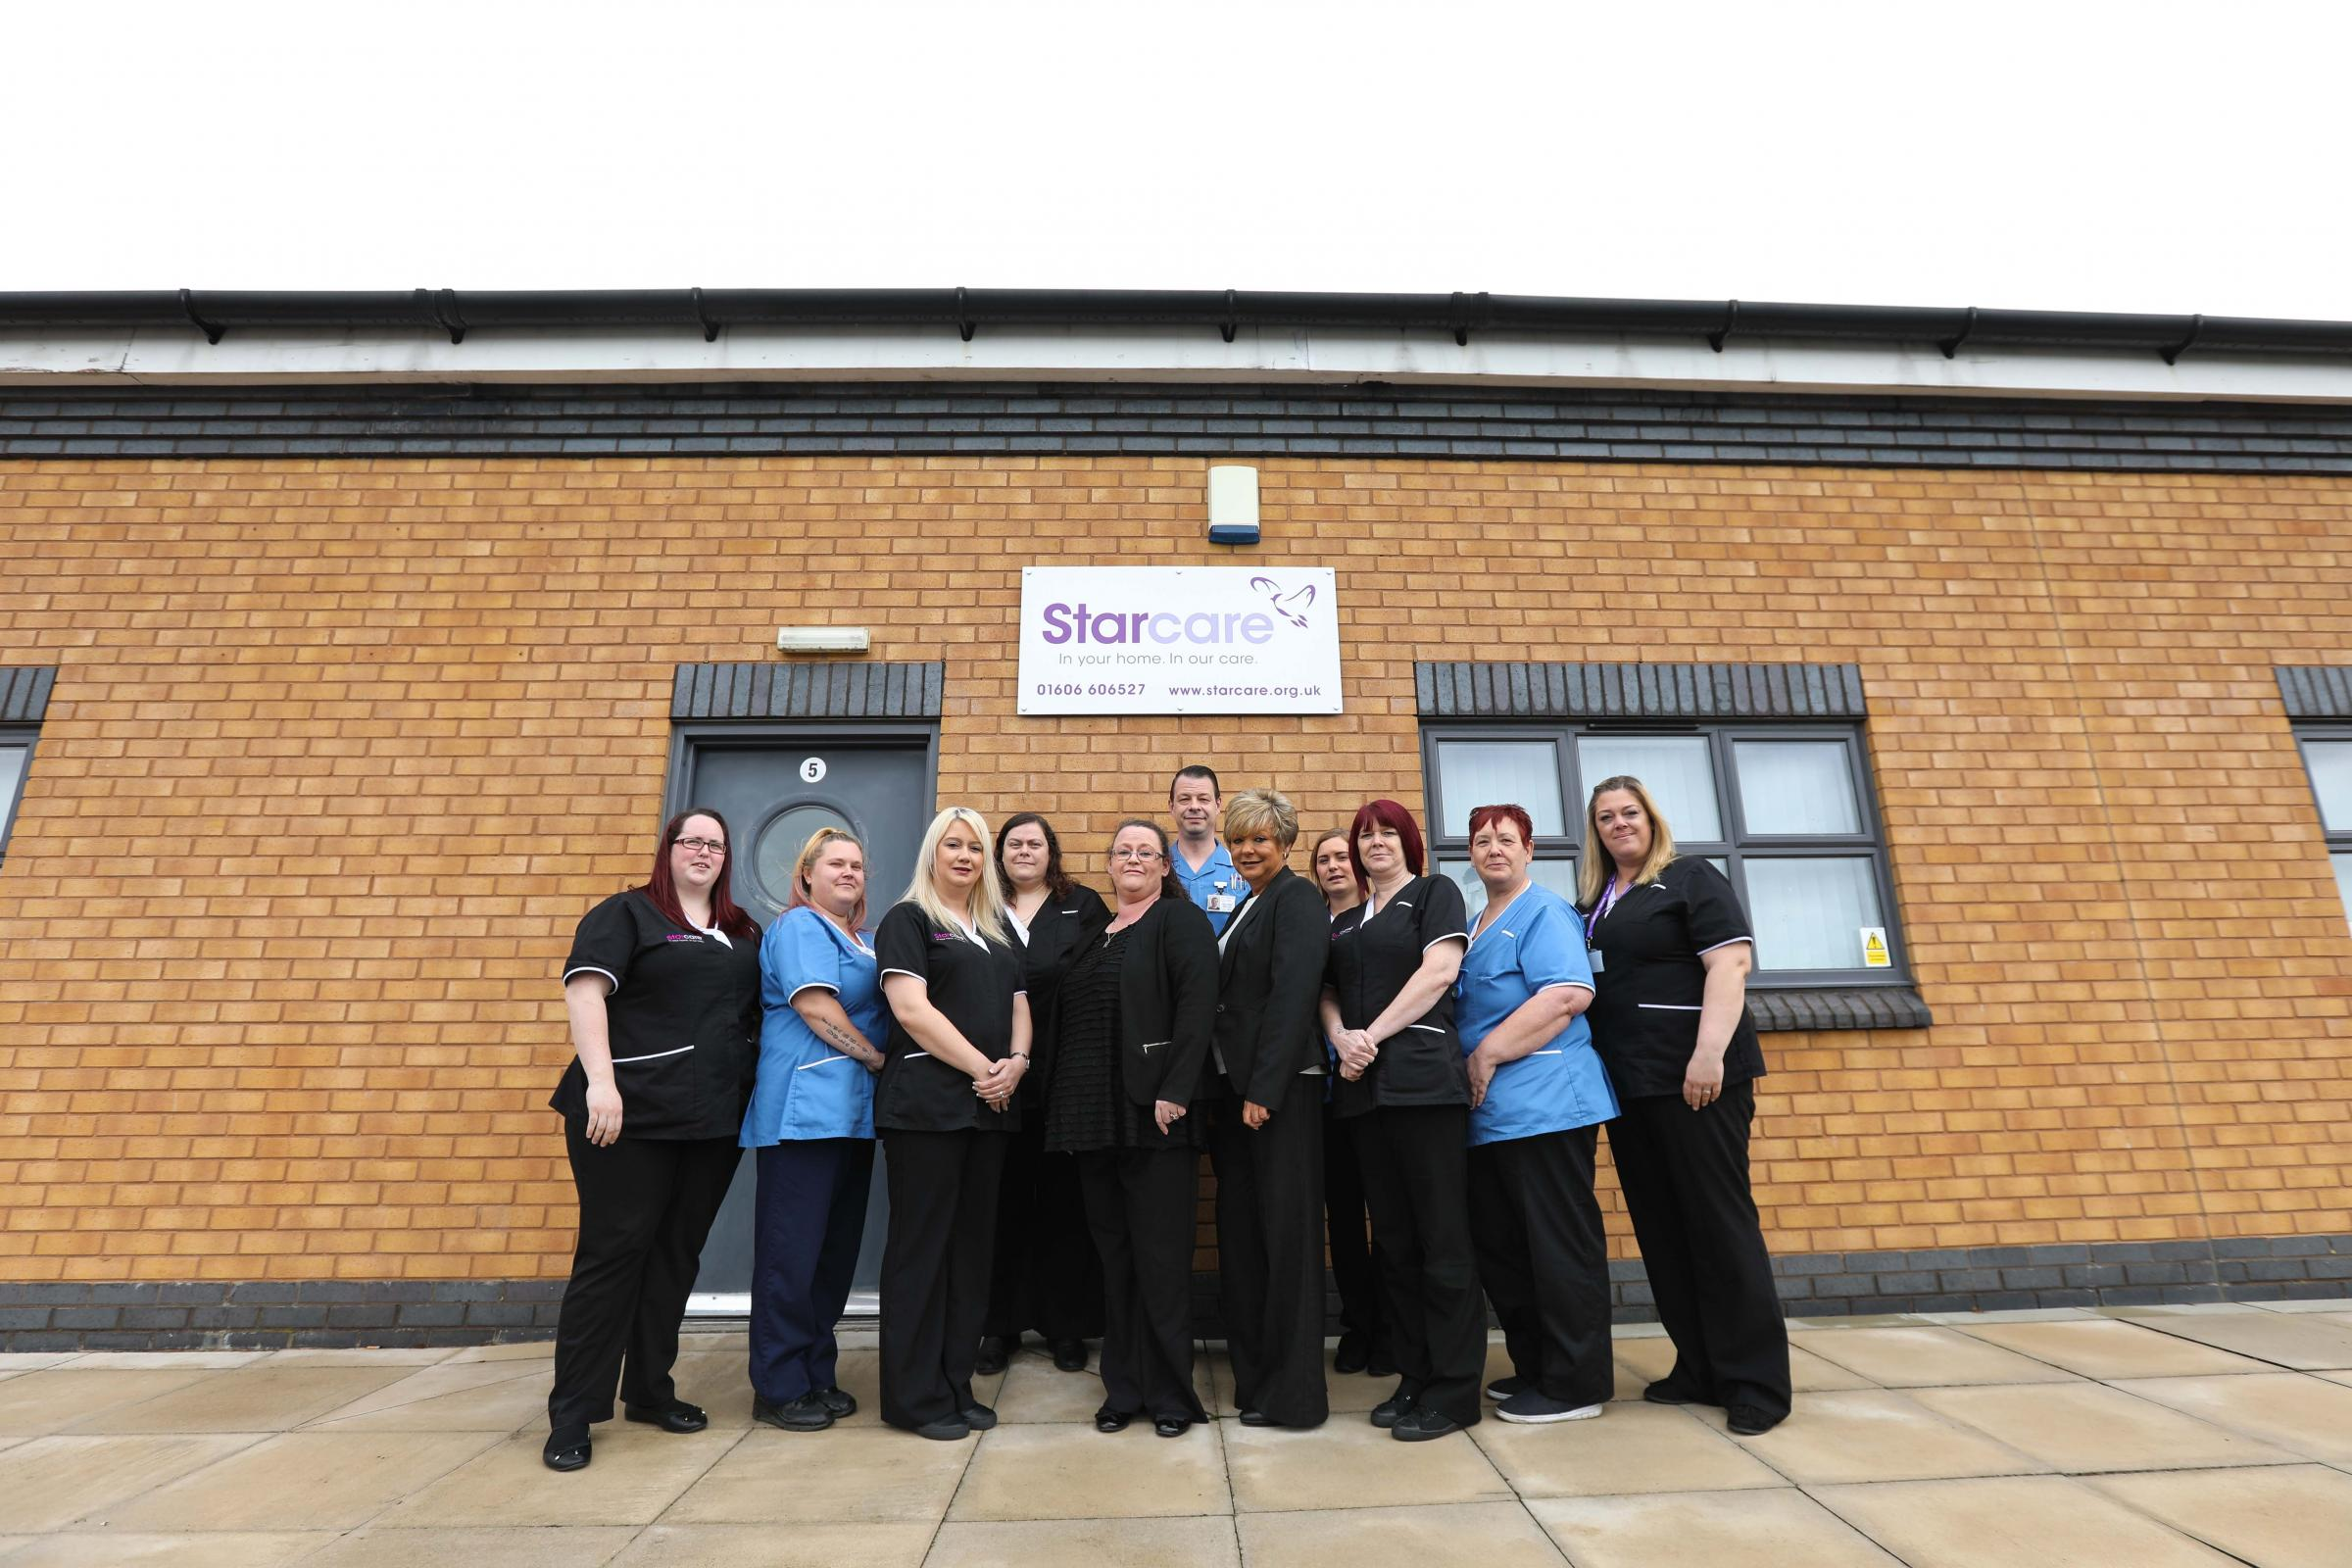 The Starcare team from Winsford with the managing director and owner Paula Pedlow, in centre